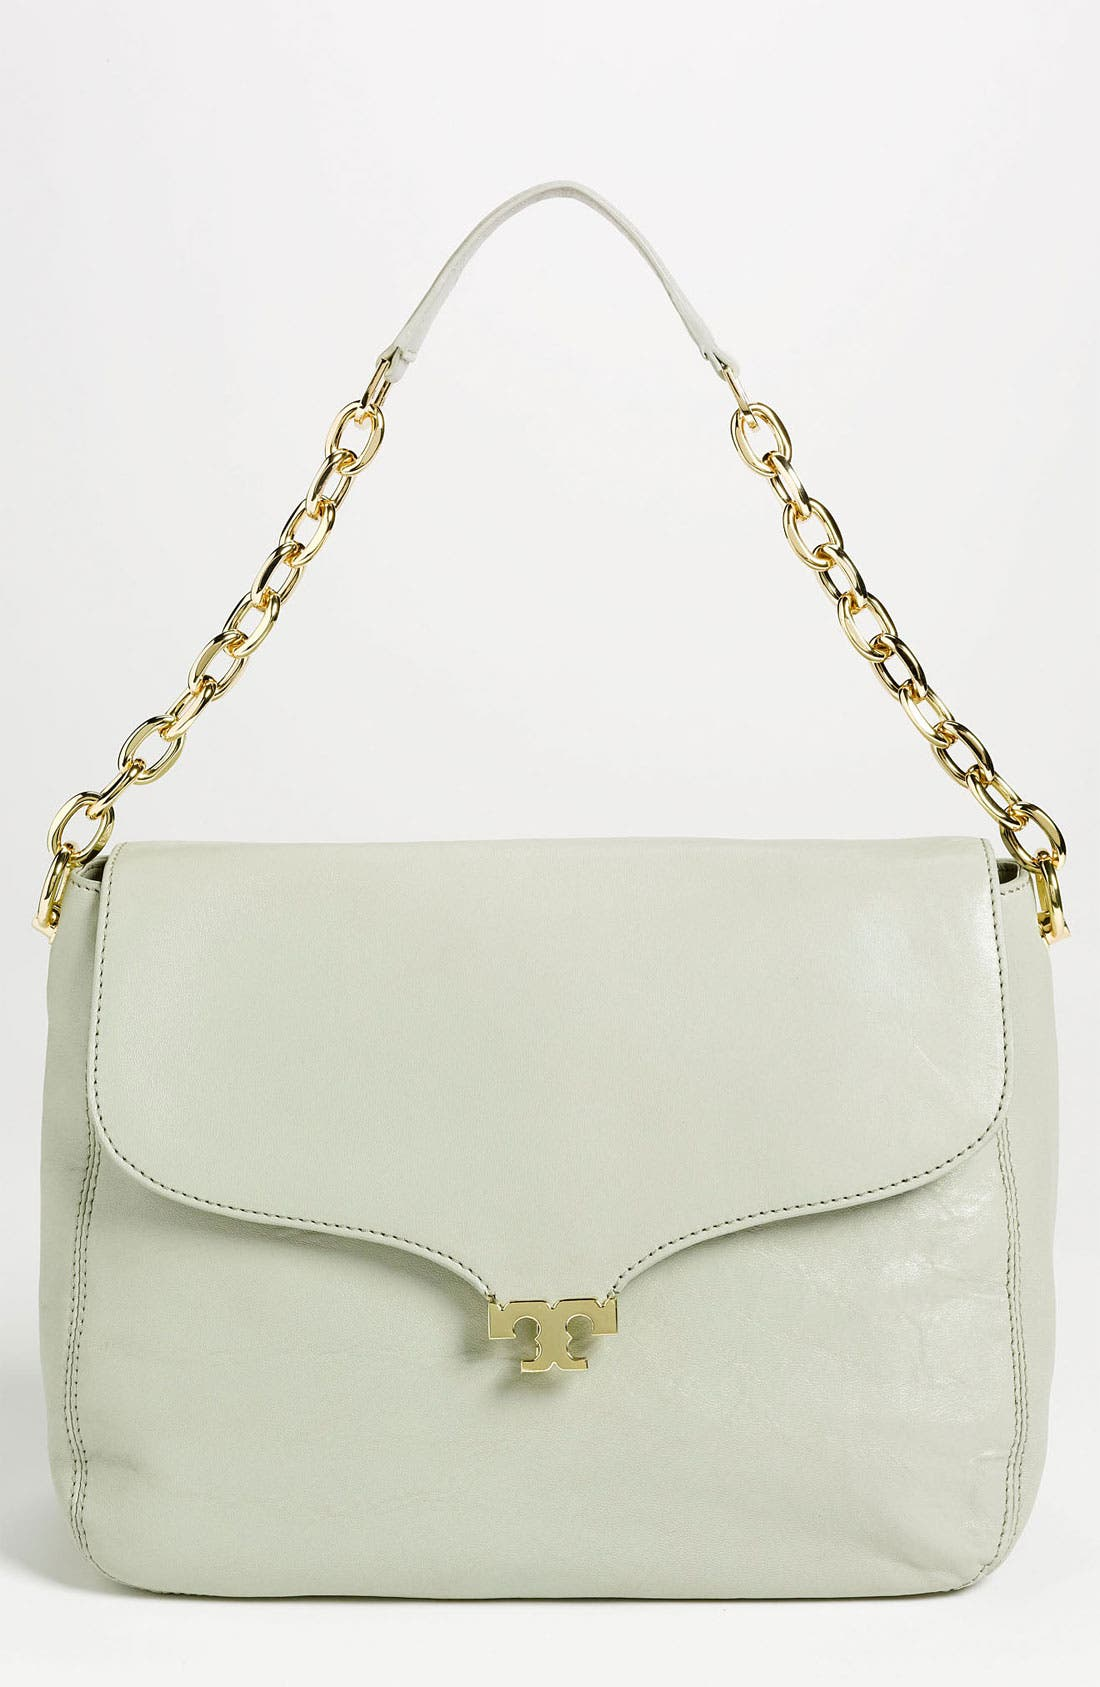 Alternate Image 1 Selected - Tory Burch 'Megan' Shoulder Bag